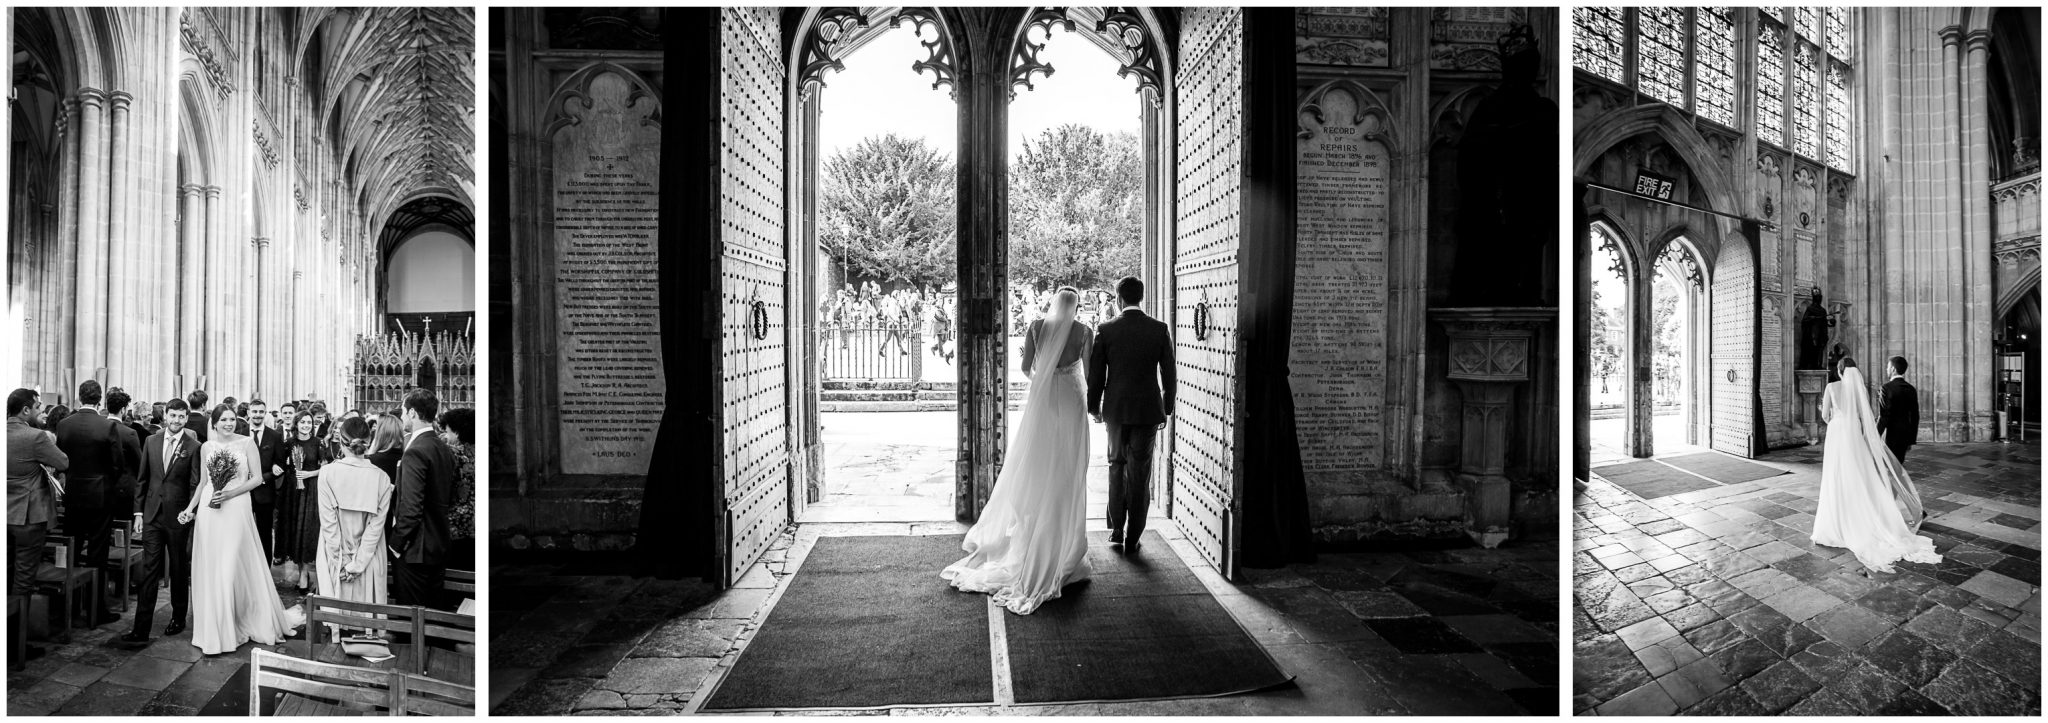 winchester cathedral wedding photography bride and groom exiting church